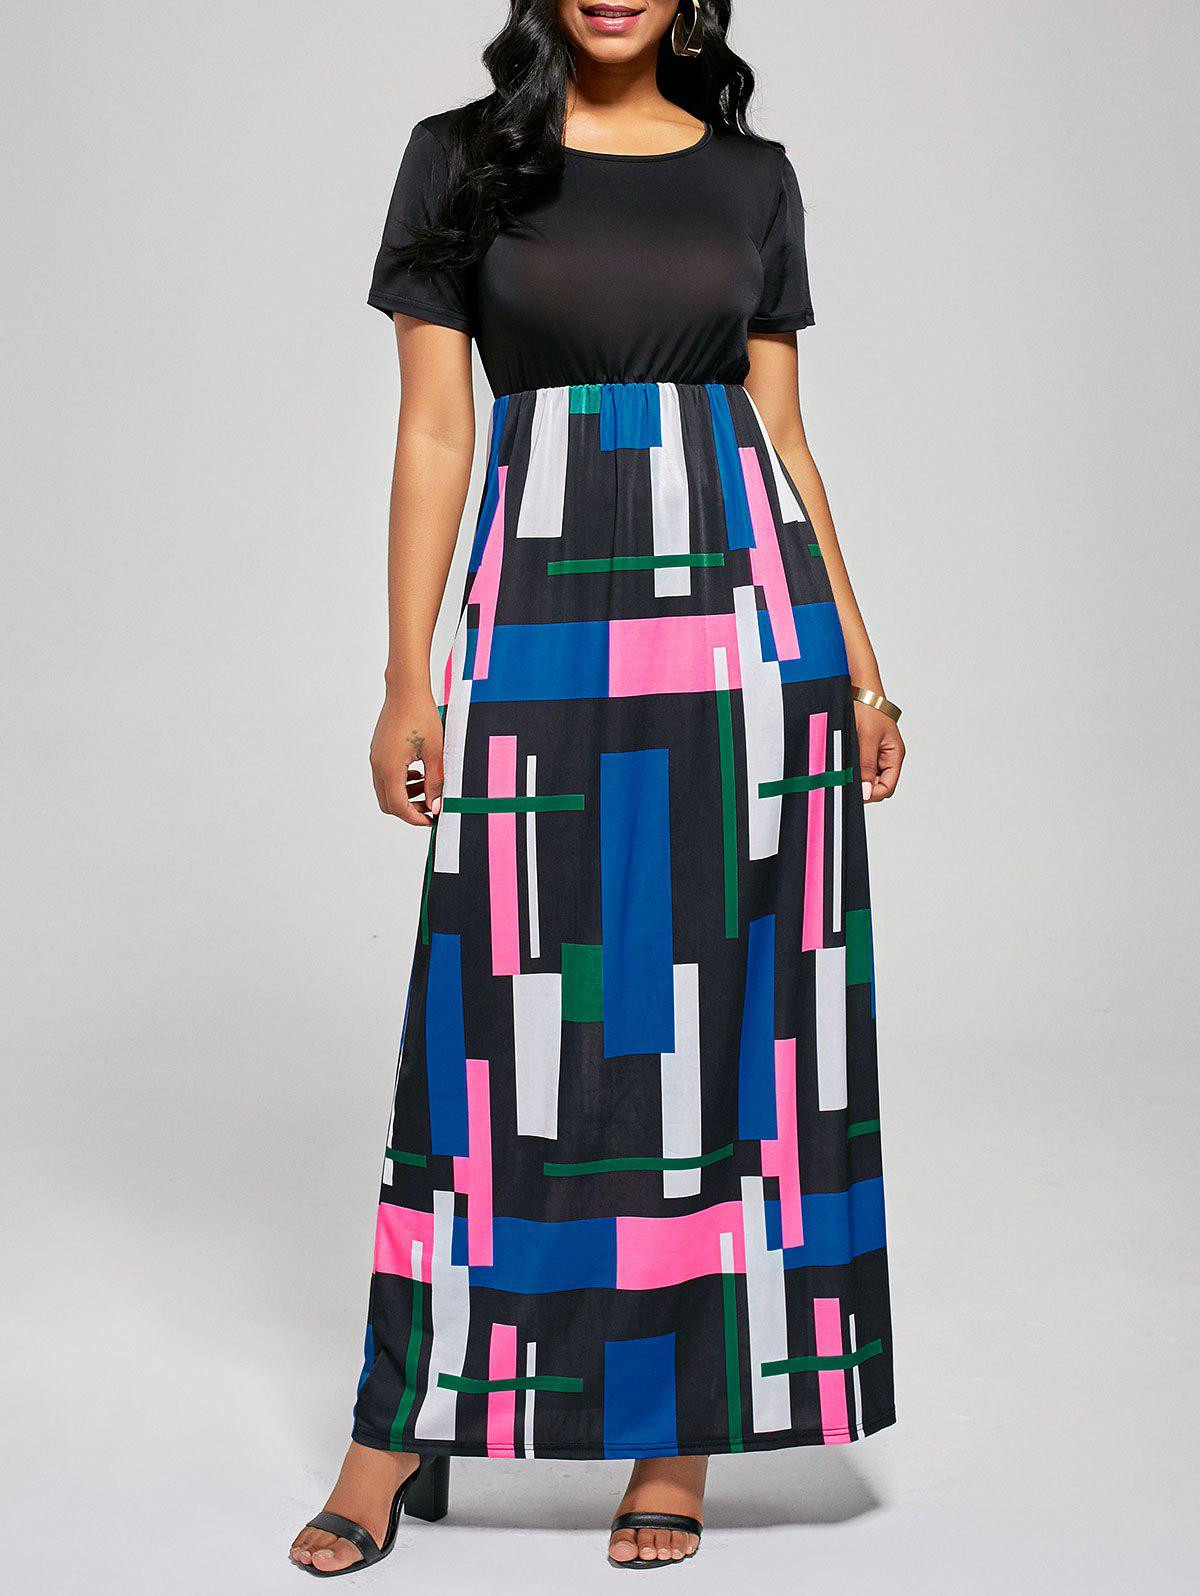 Geometric Print A Line Floor Length Dress - BLACK / ROSE M